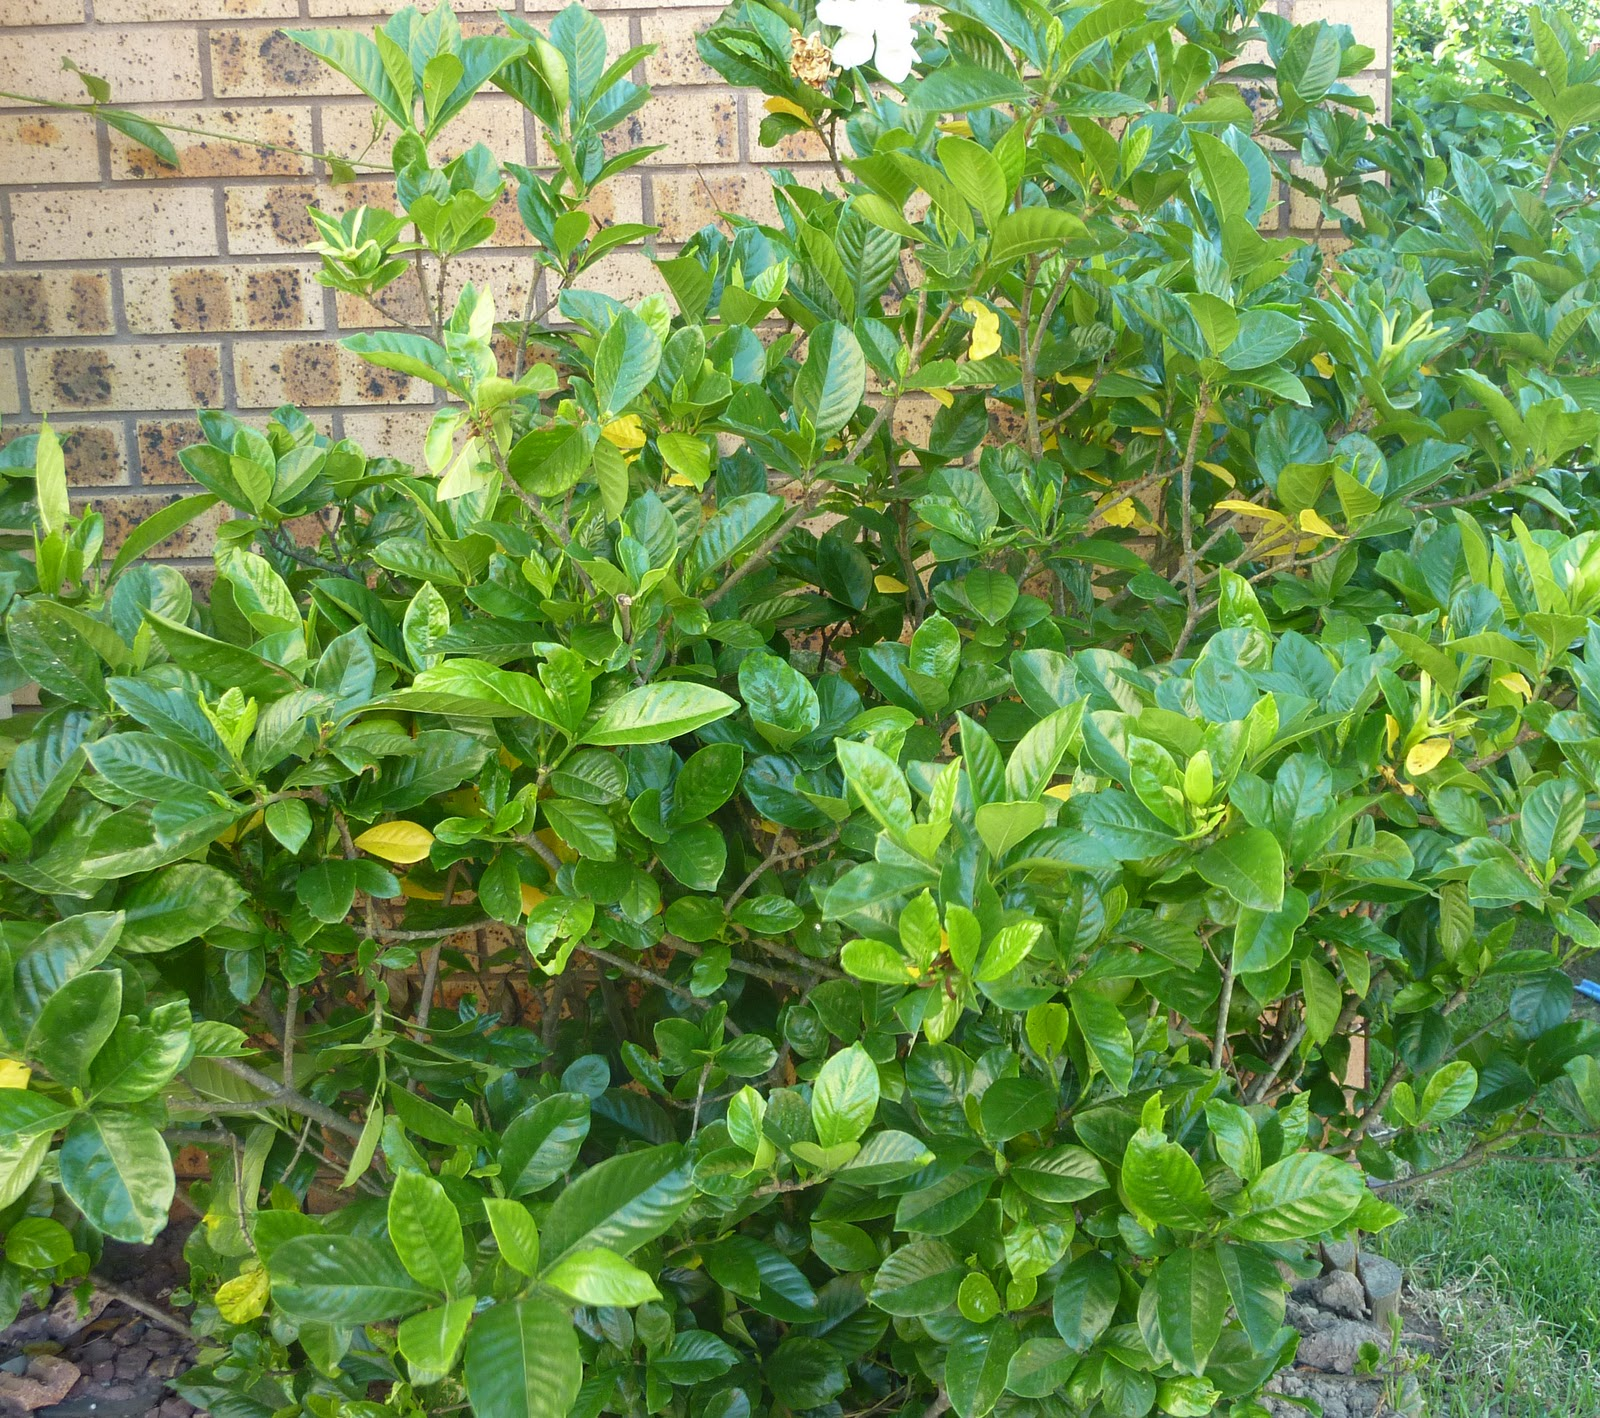 Gardenia Bush http://motherhoodcareerfashion.blogspot.com/2012_01_01_archive.html